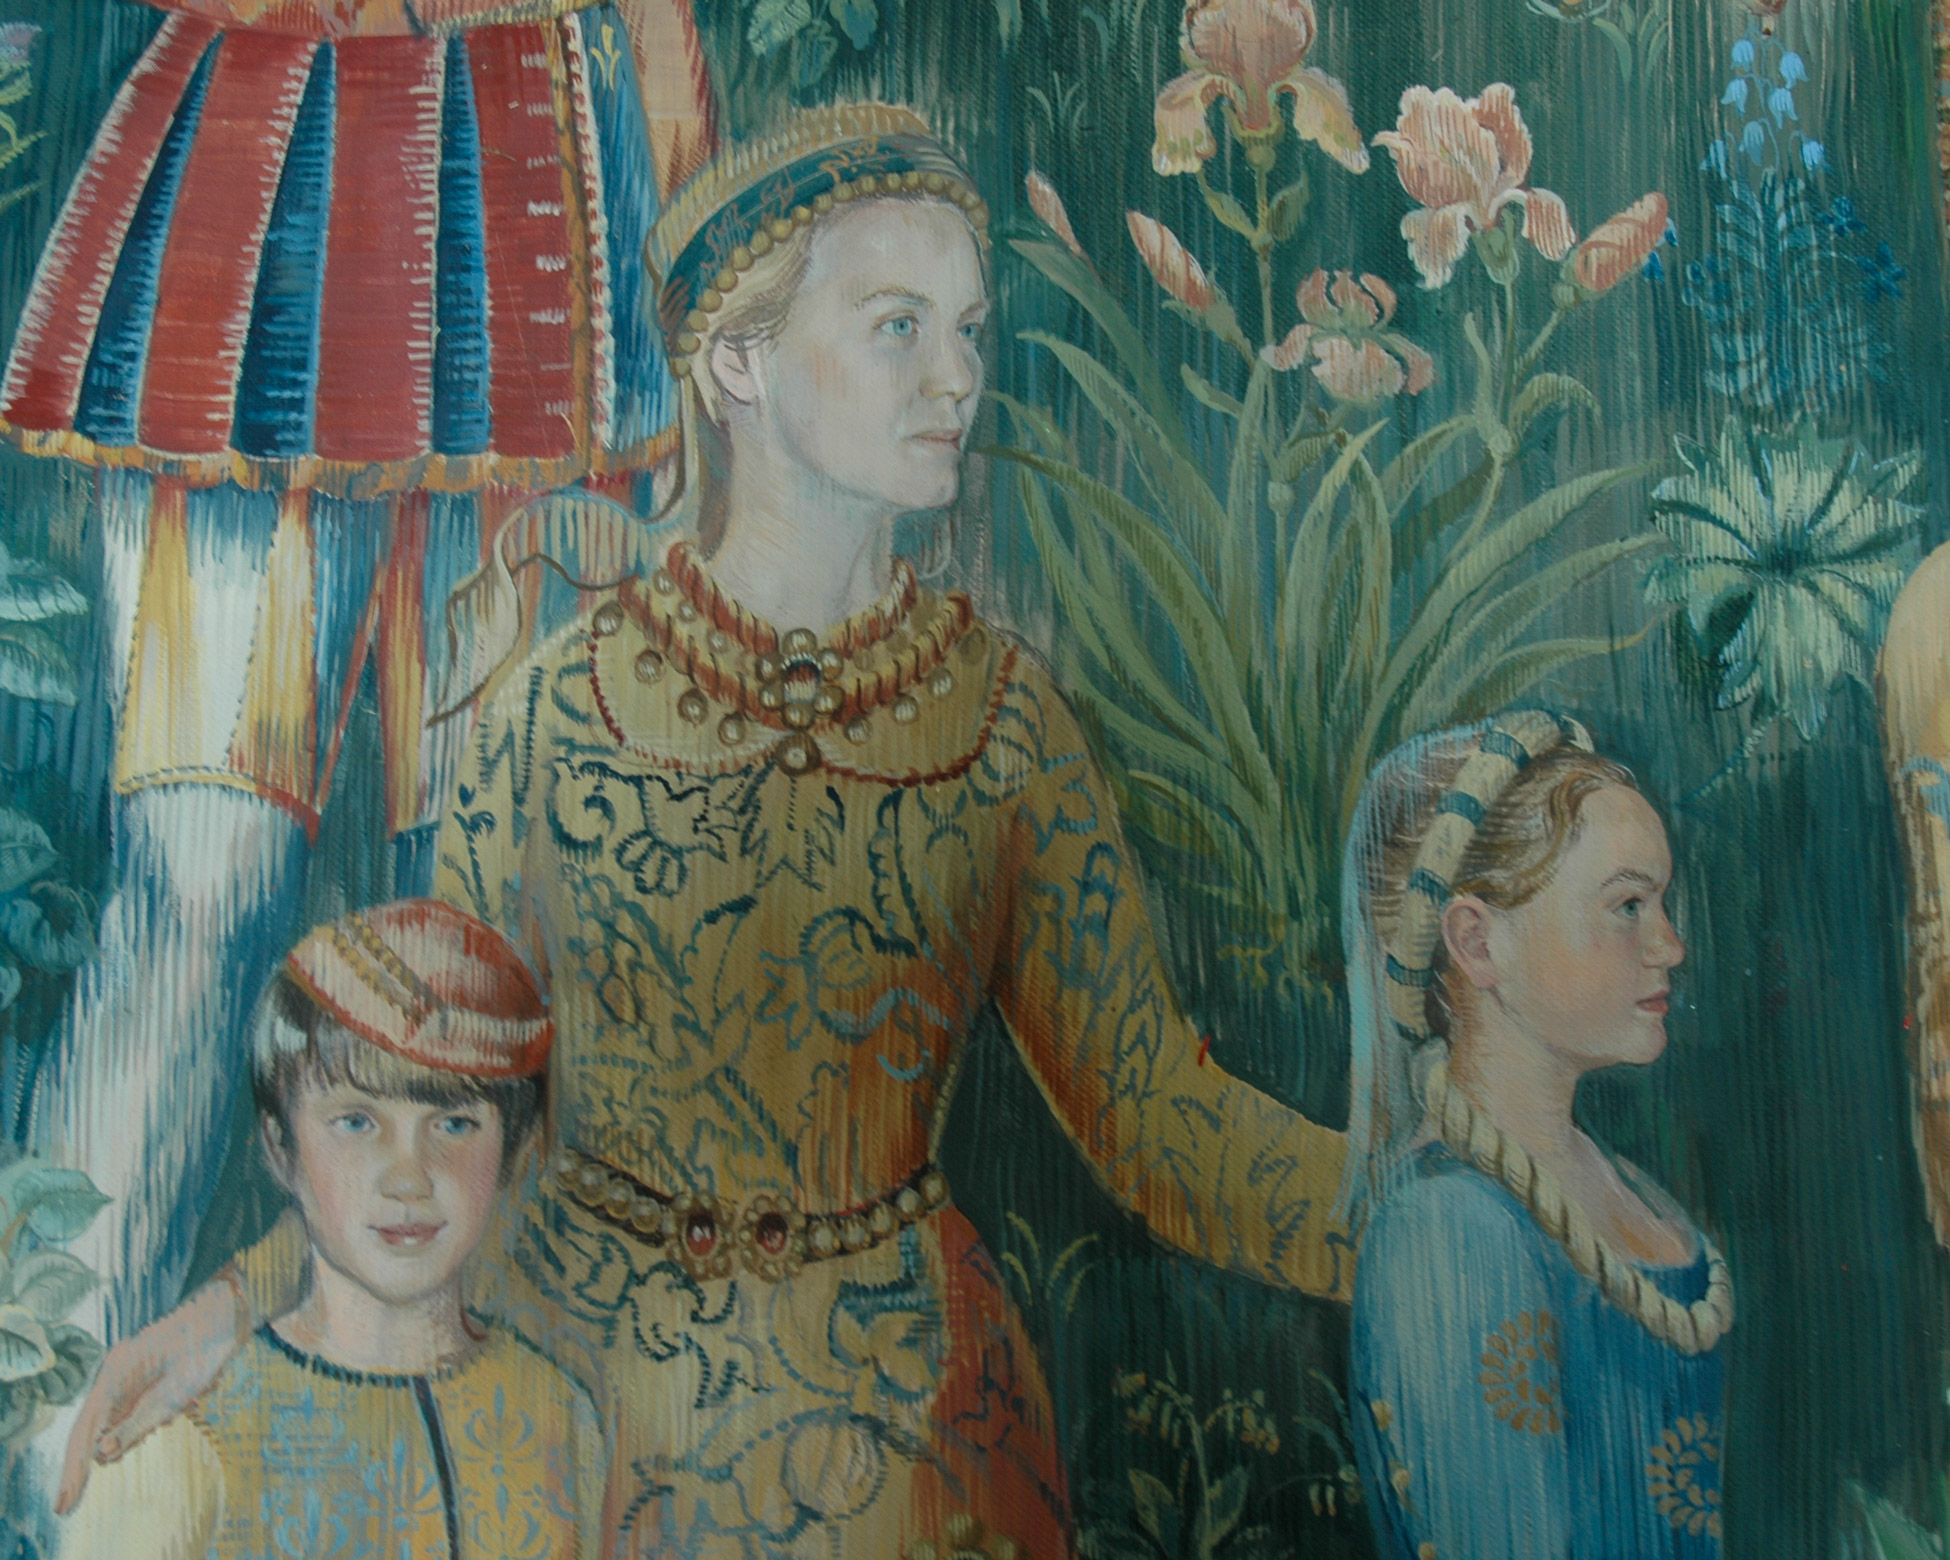 Tapestry mural with detail of mother and children in medieval costume